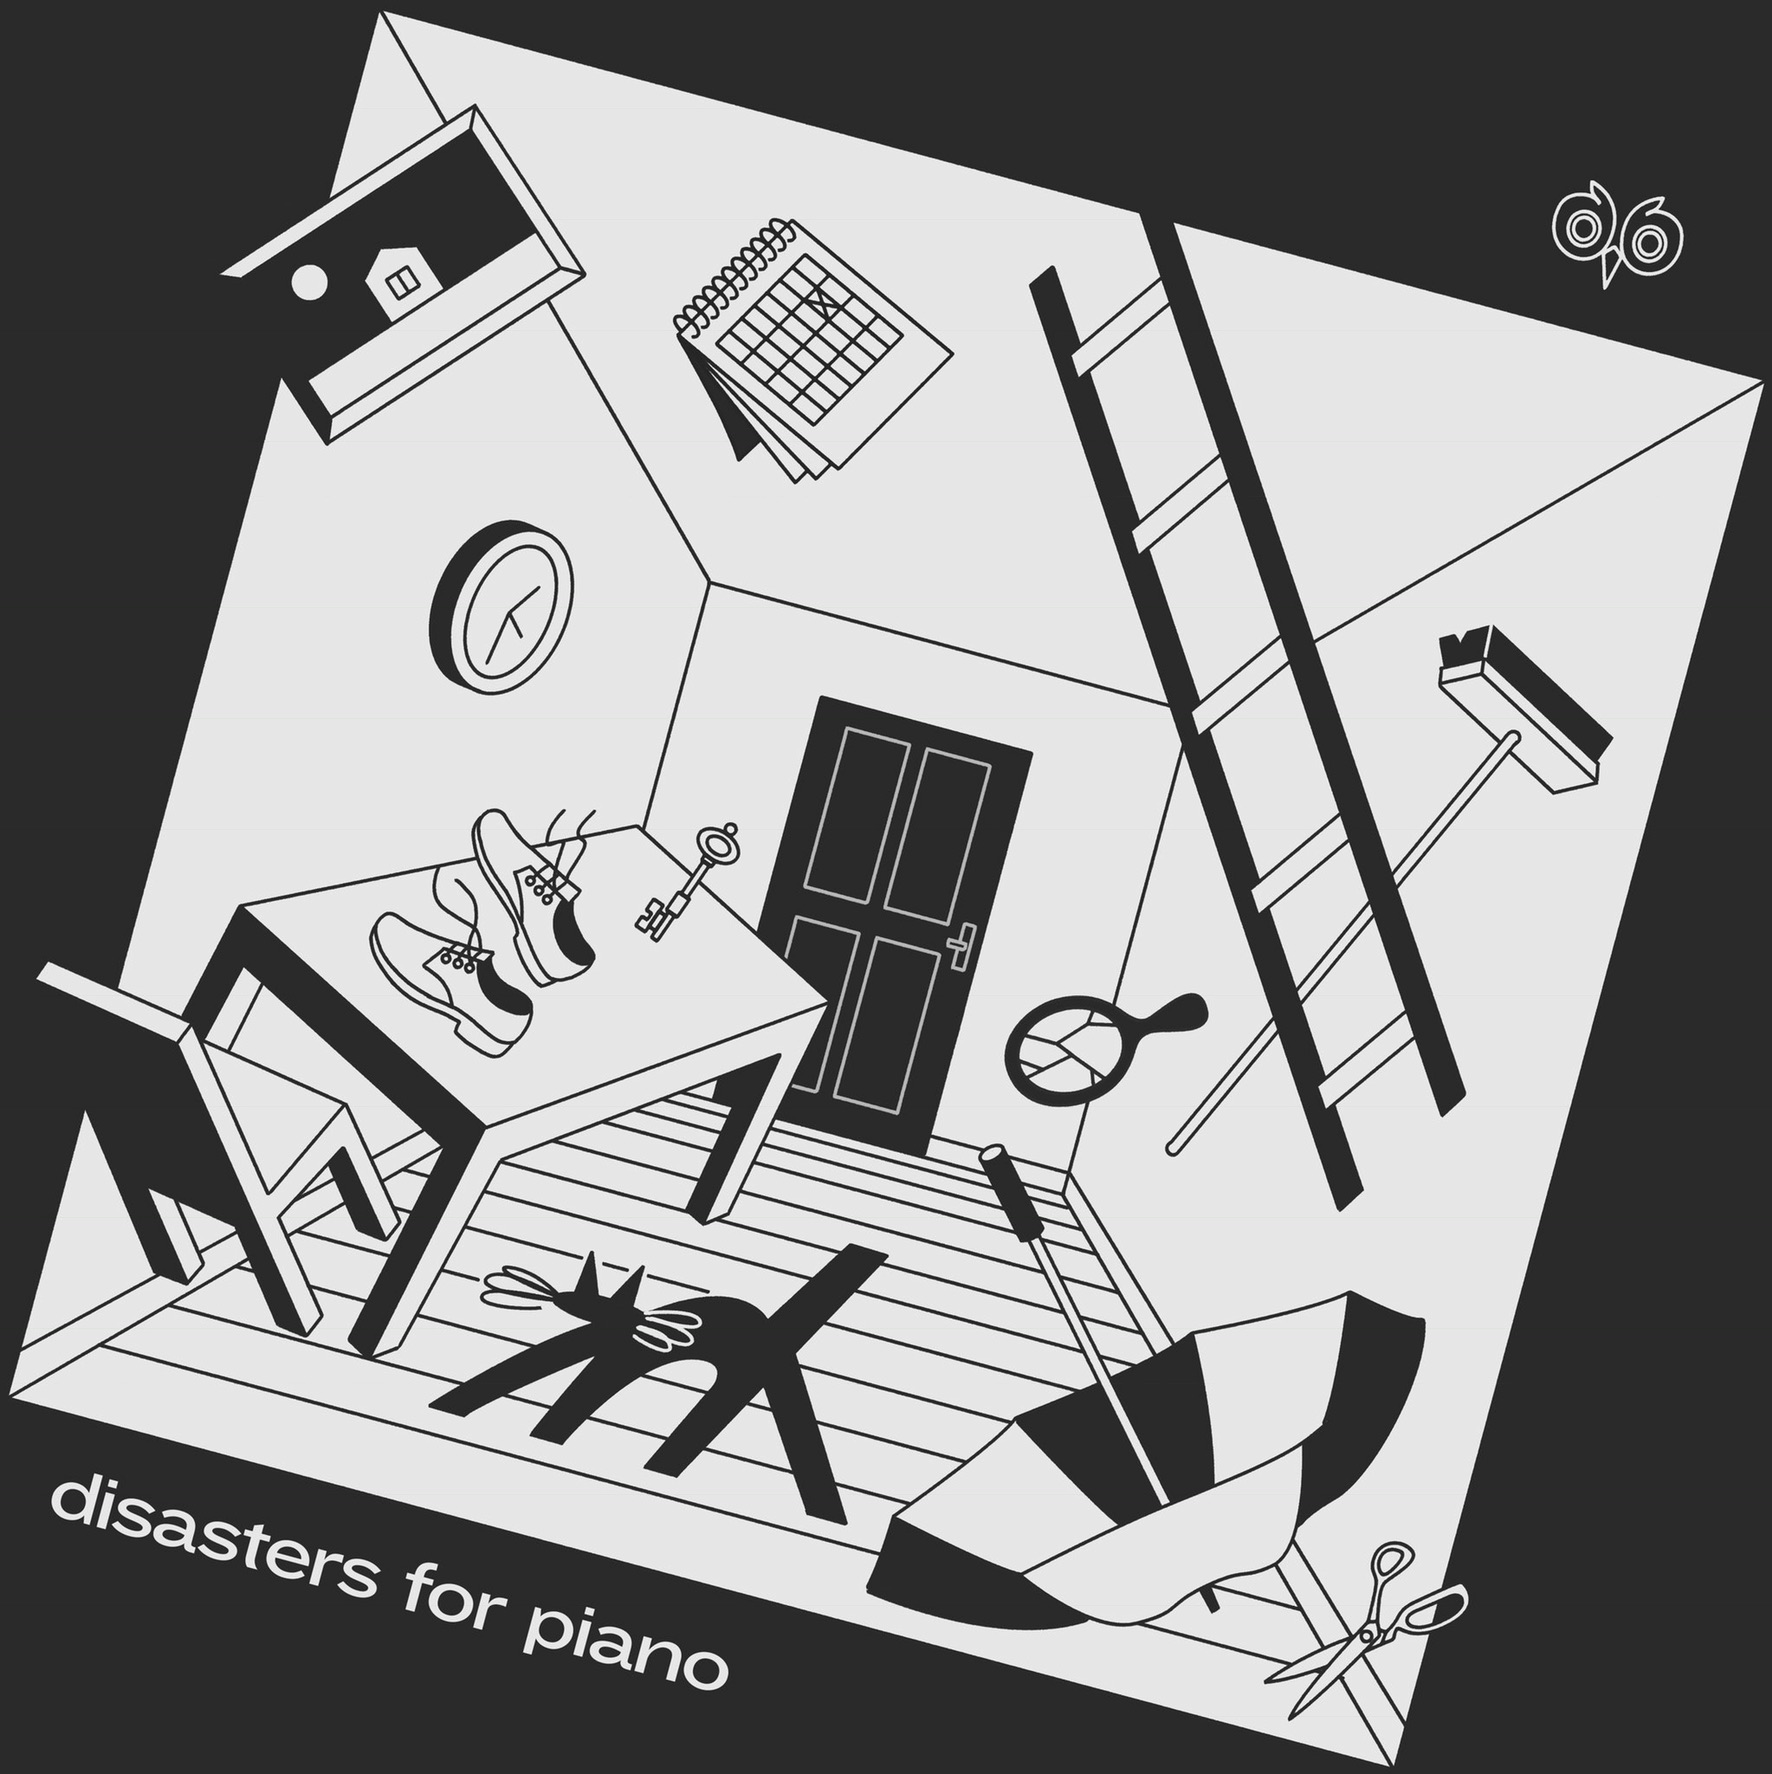 disasters-for-piano.JPG